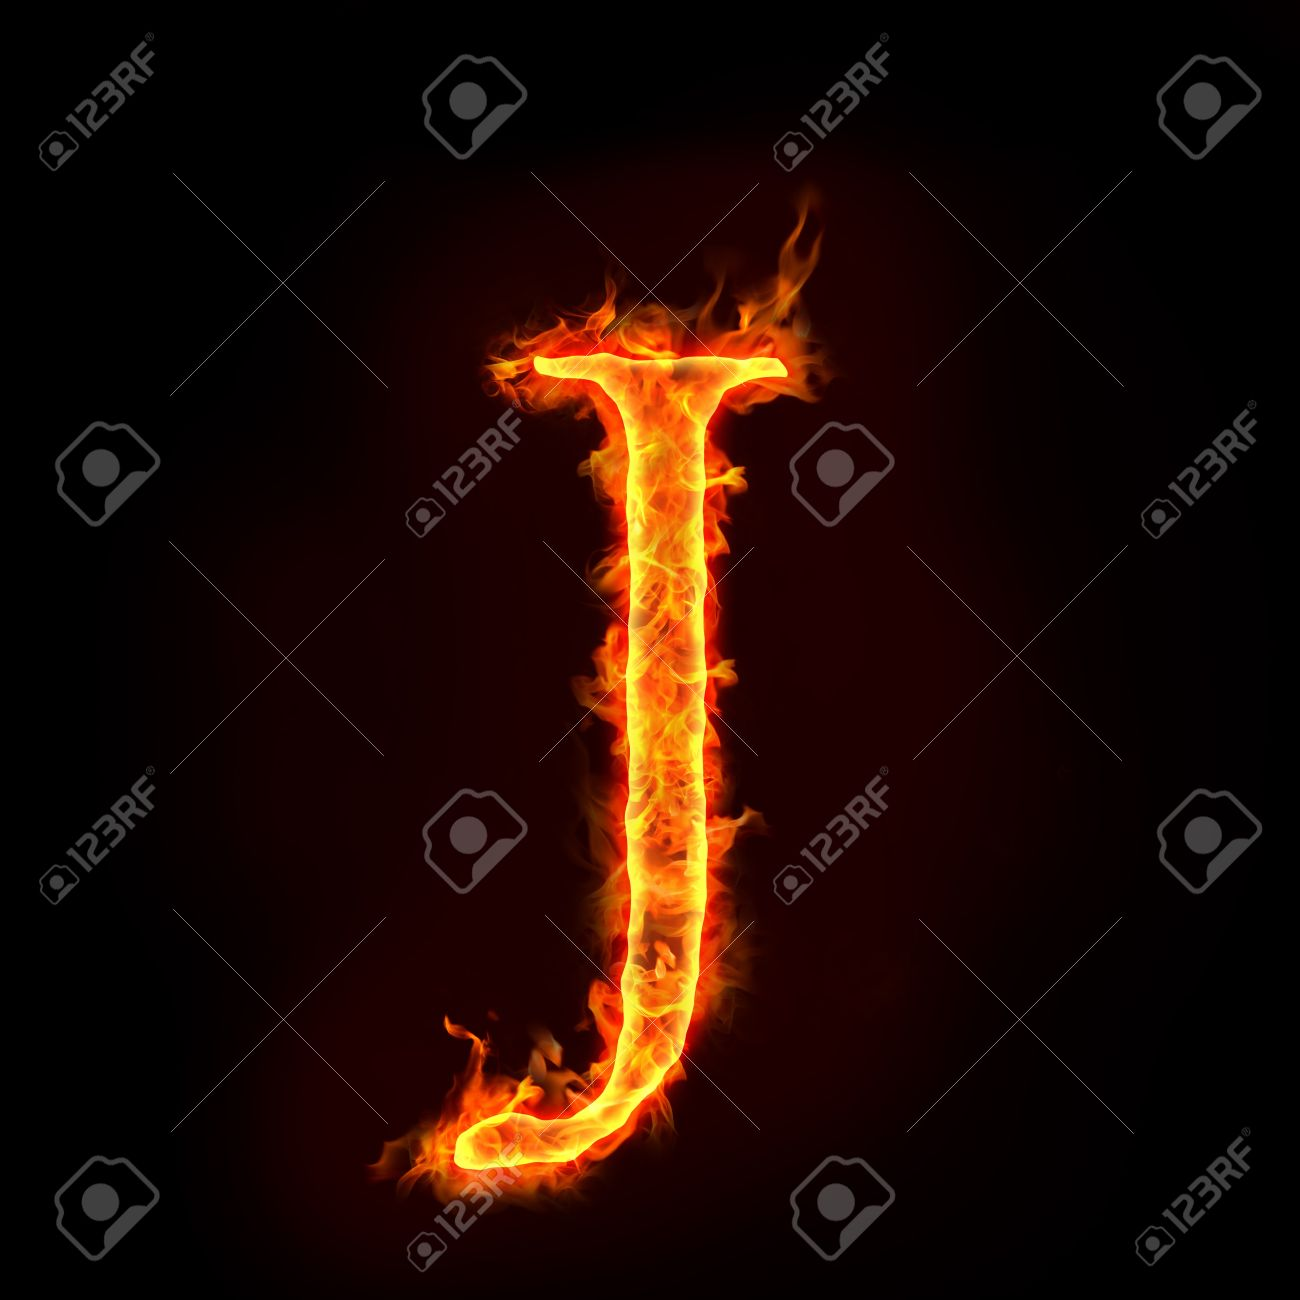 J&t Home Design Part - 42: Fire Alphabets In Flame, Letter J Stock Photo - 10232875